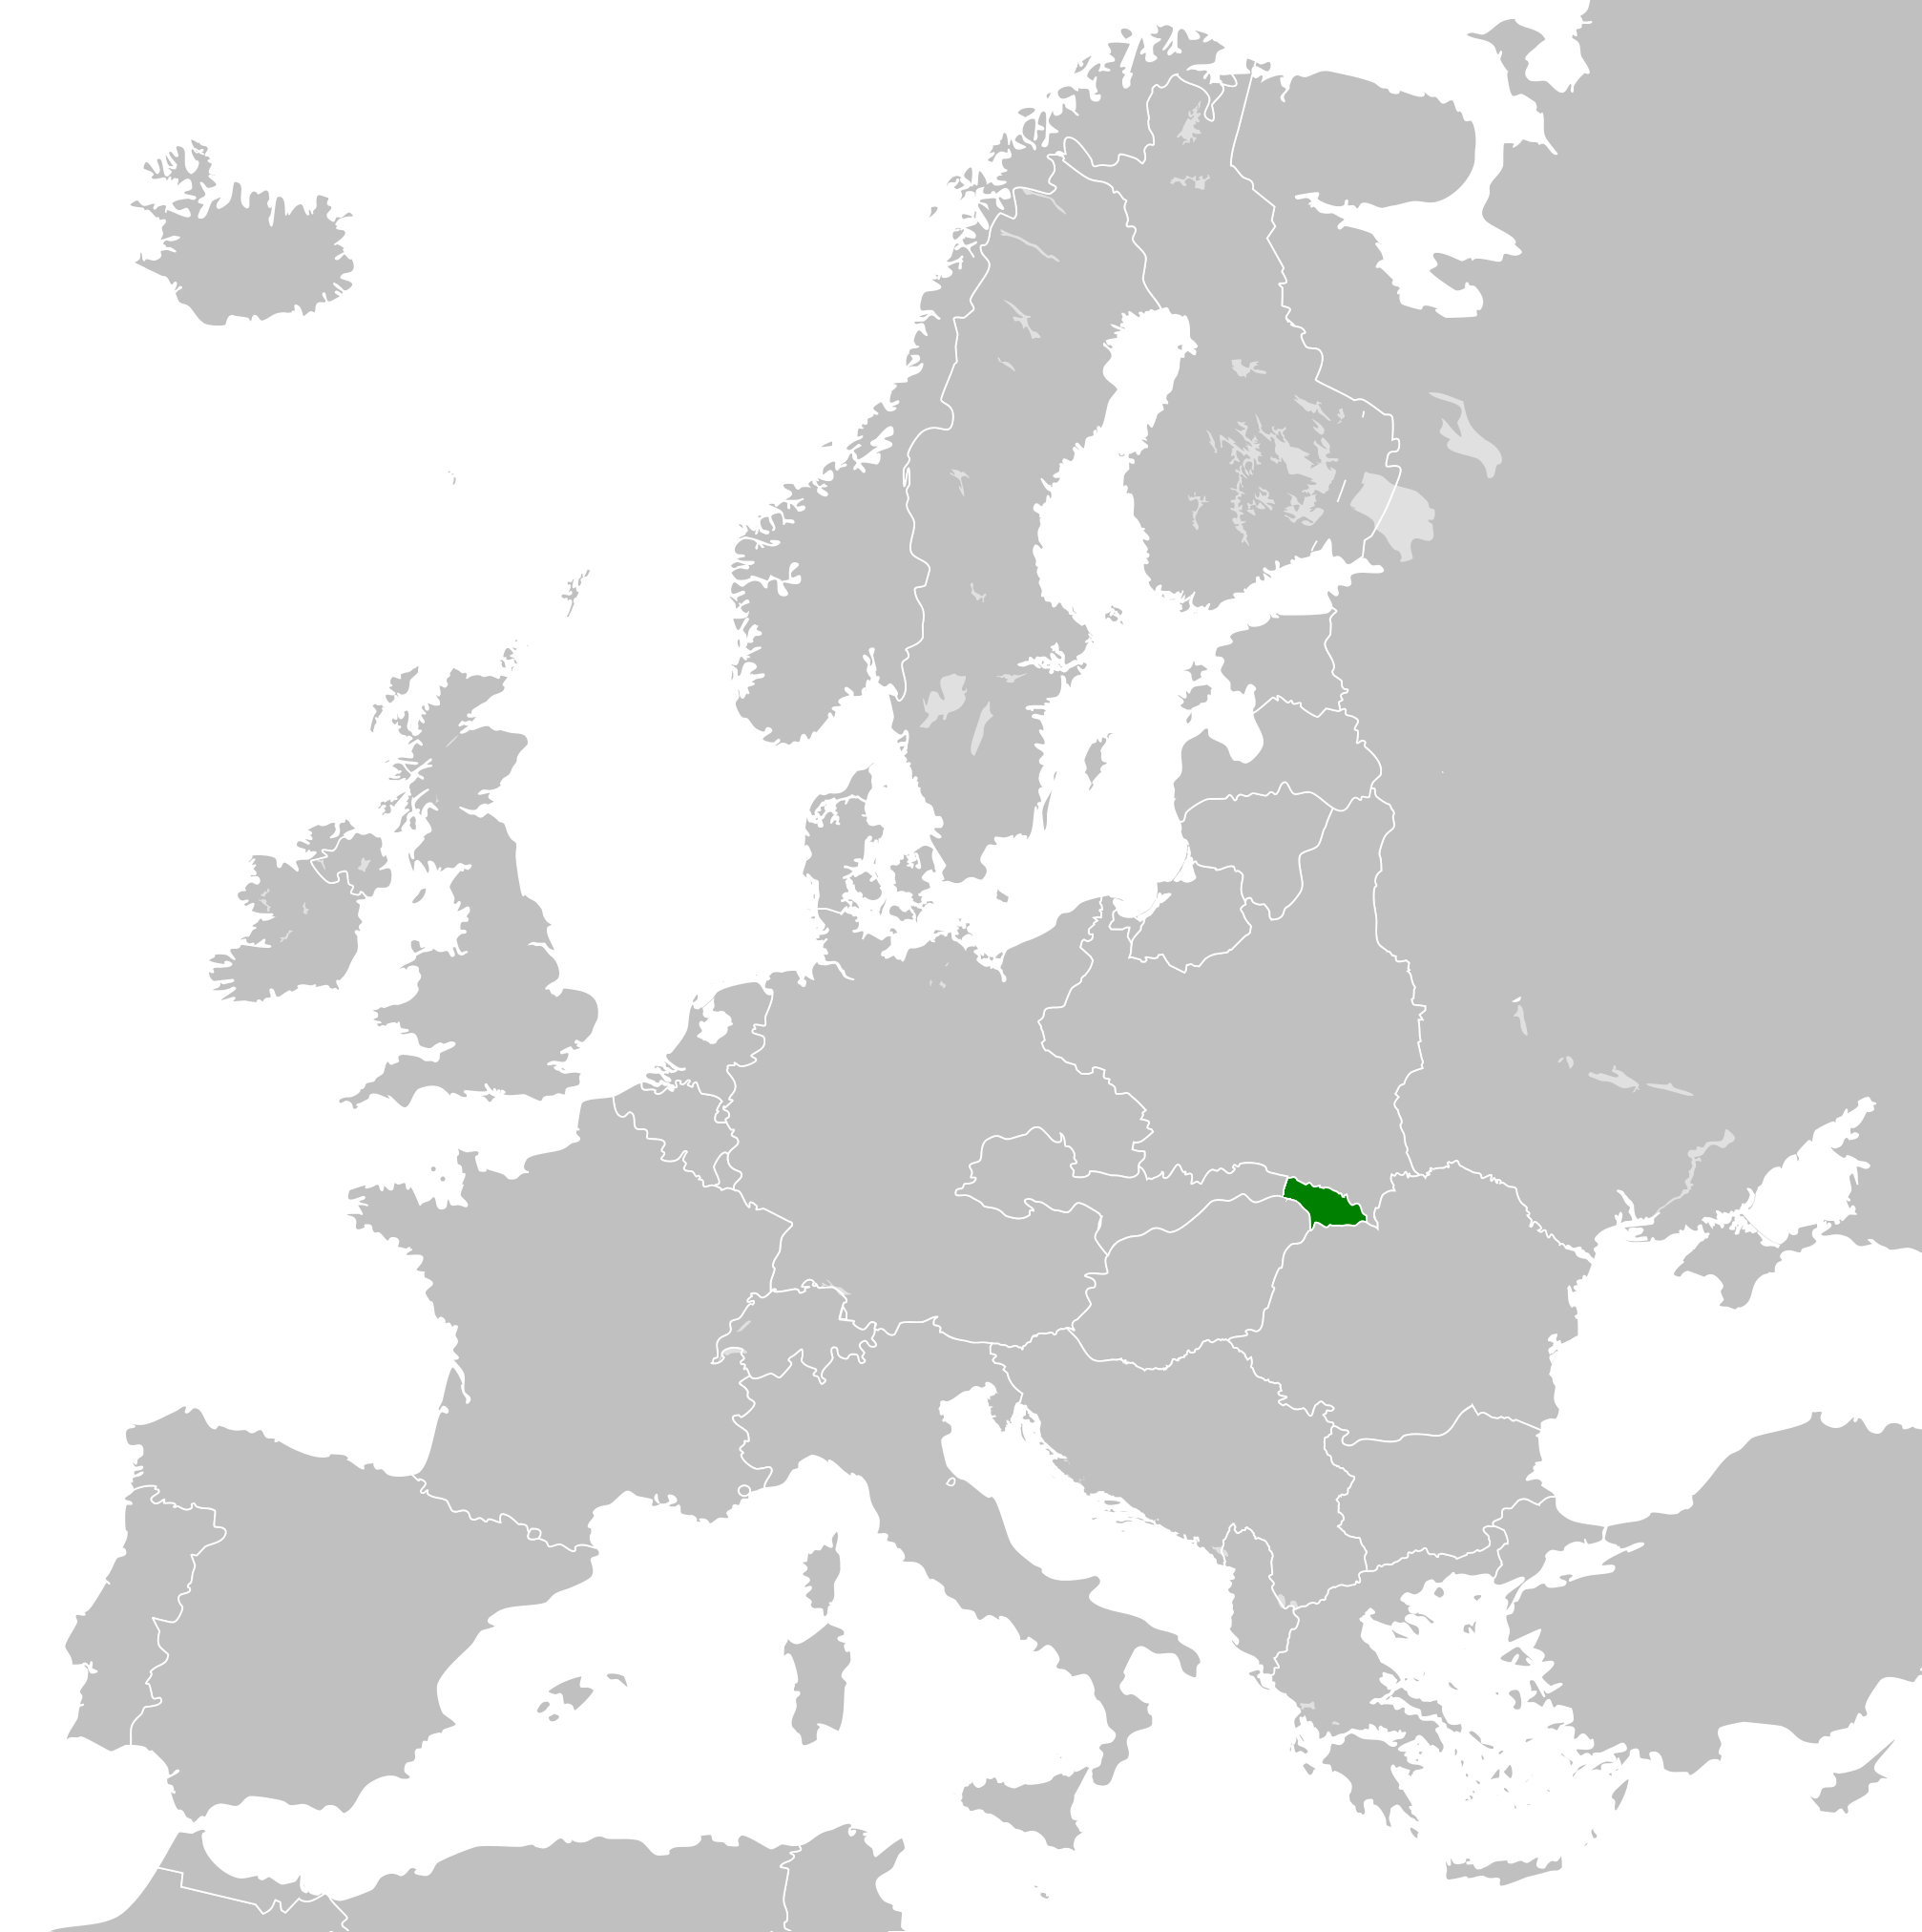 File:Location map of the Republic of Carpatho-Ukraine in Europe in ...